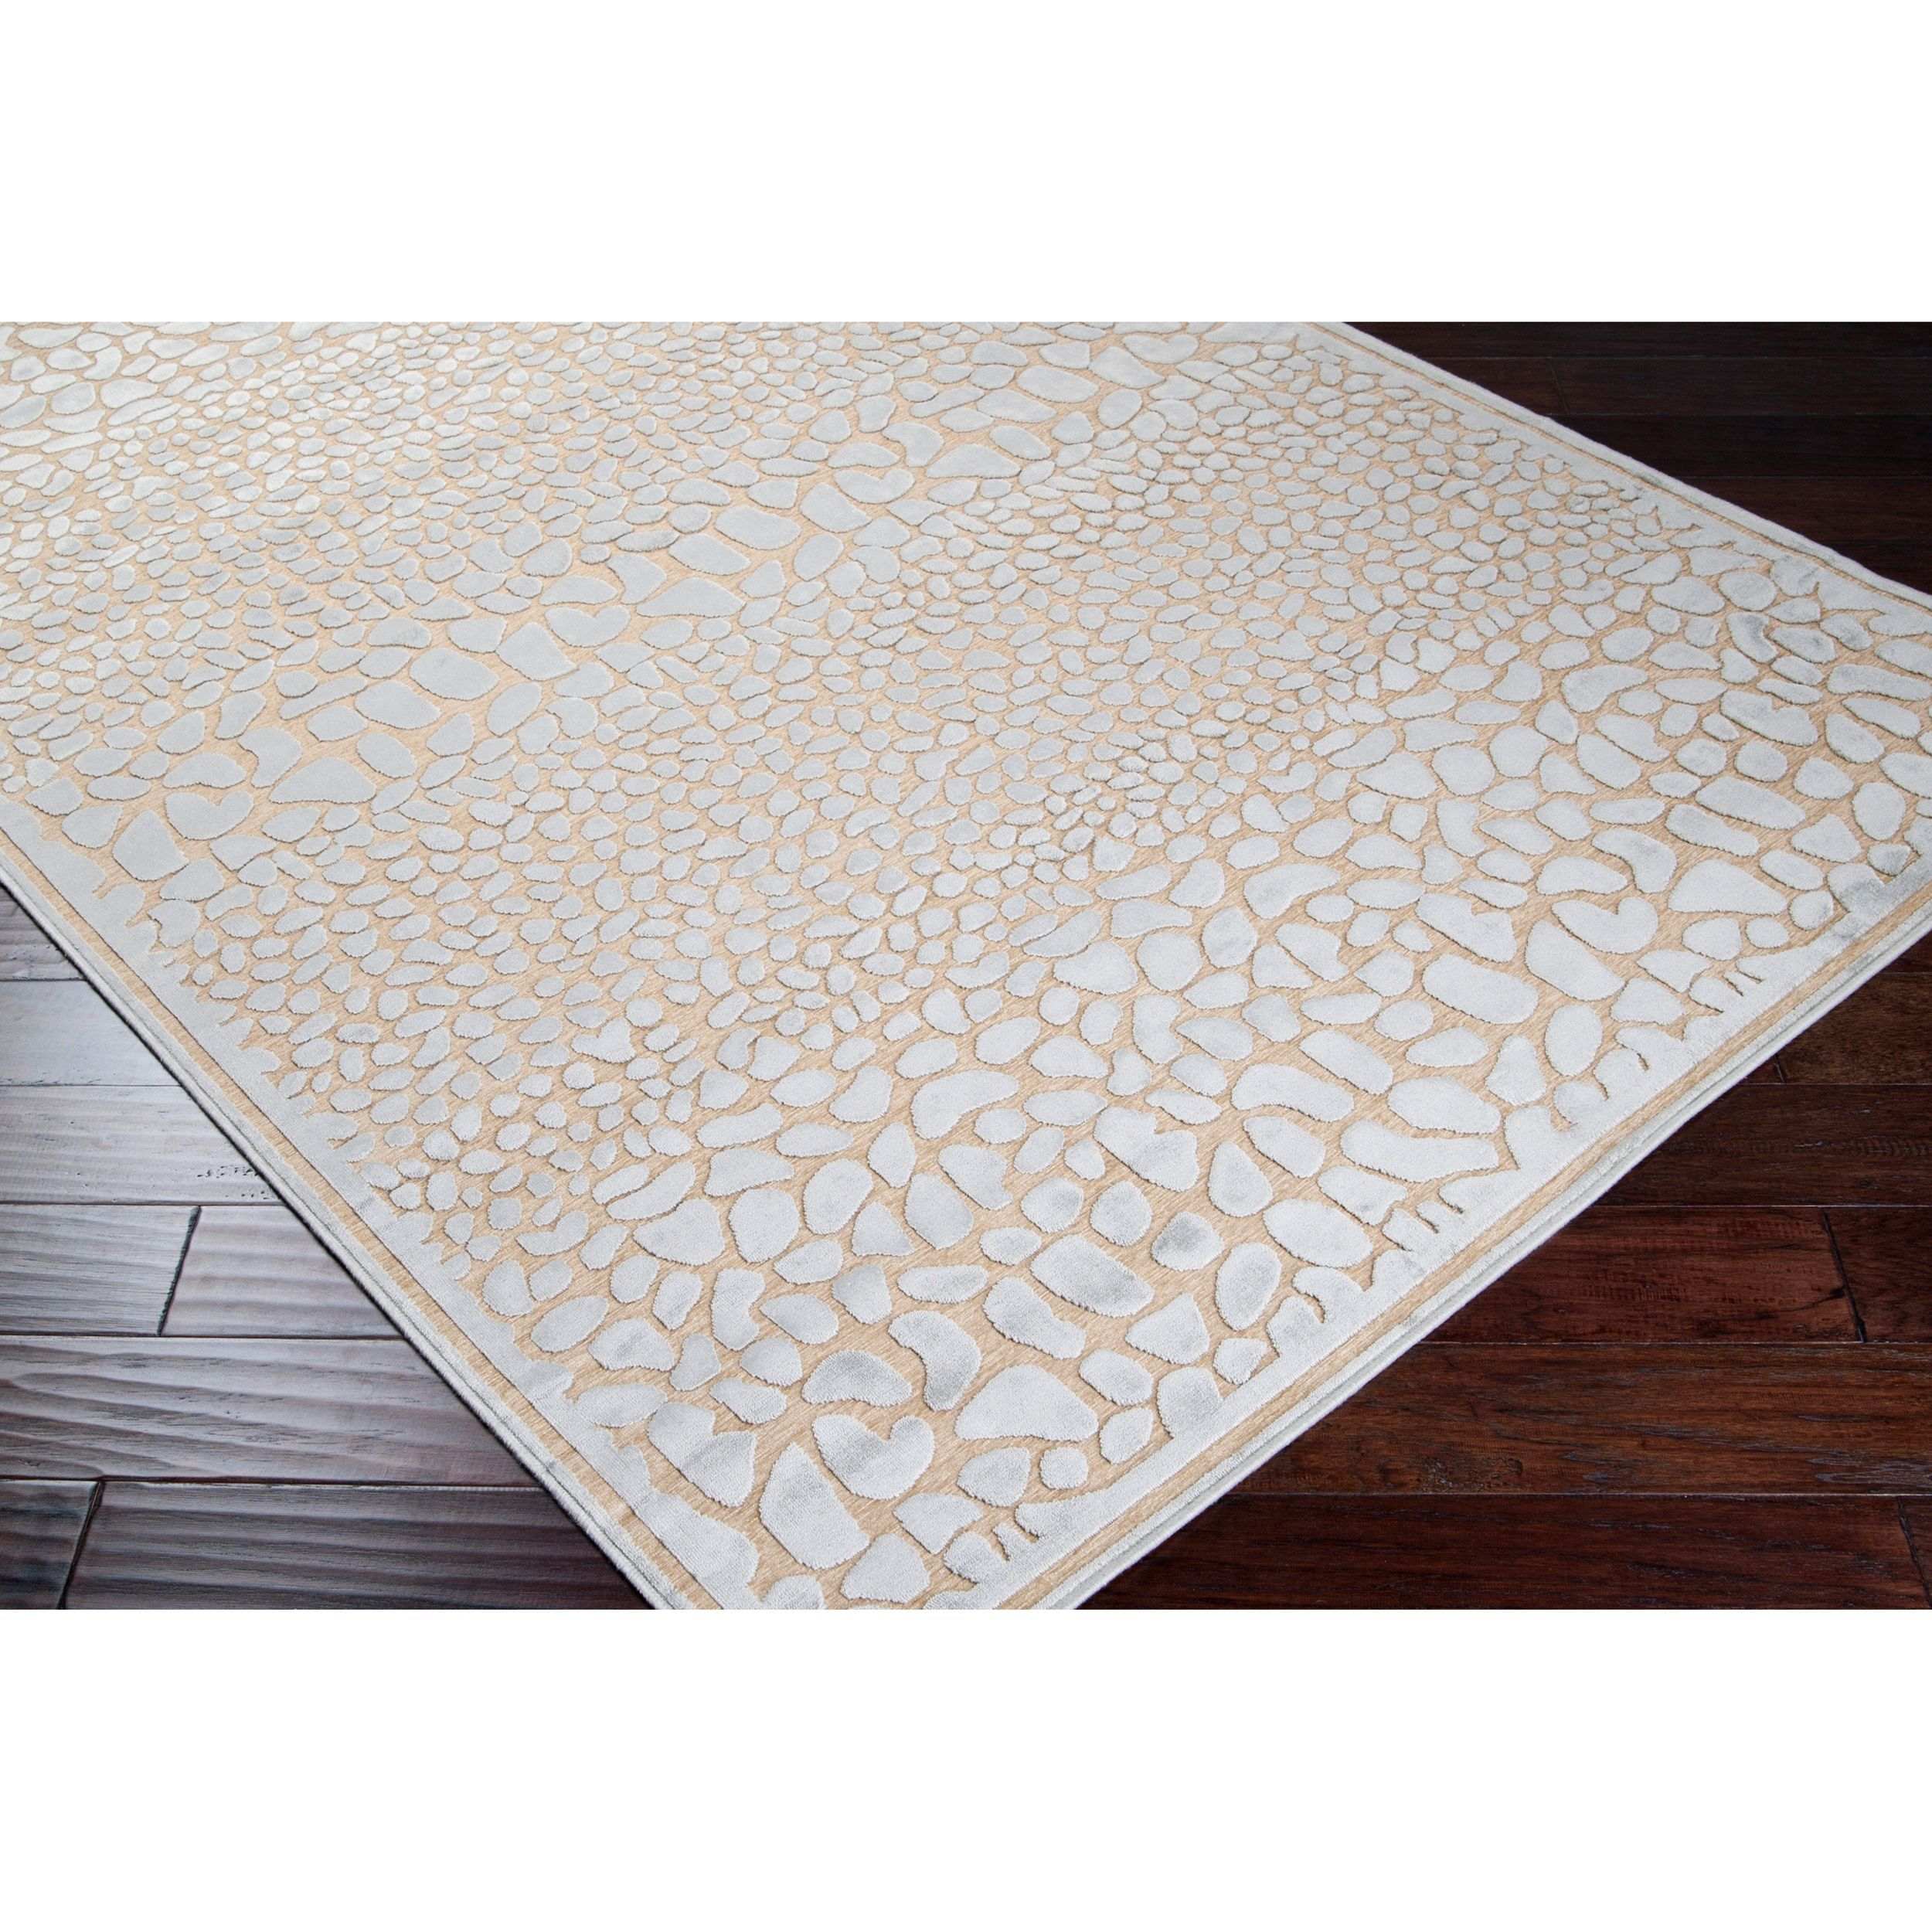 Loomed of beautiful viscose and chenille fabric, this rug features and eye-catching leather pattern. A rich tone of light blue completes this brown floor rug.